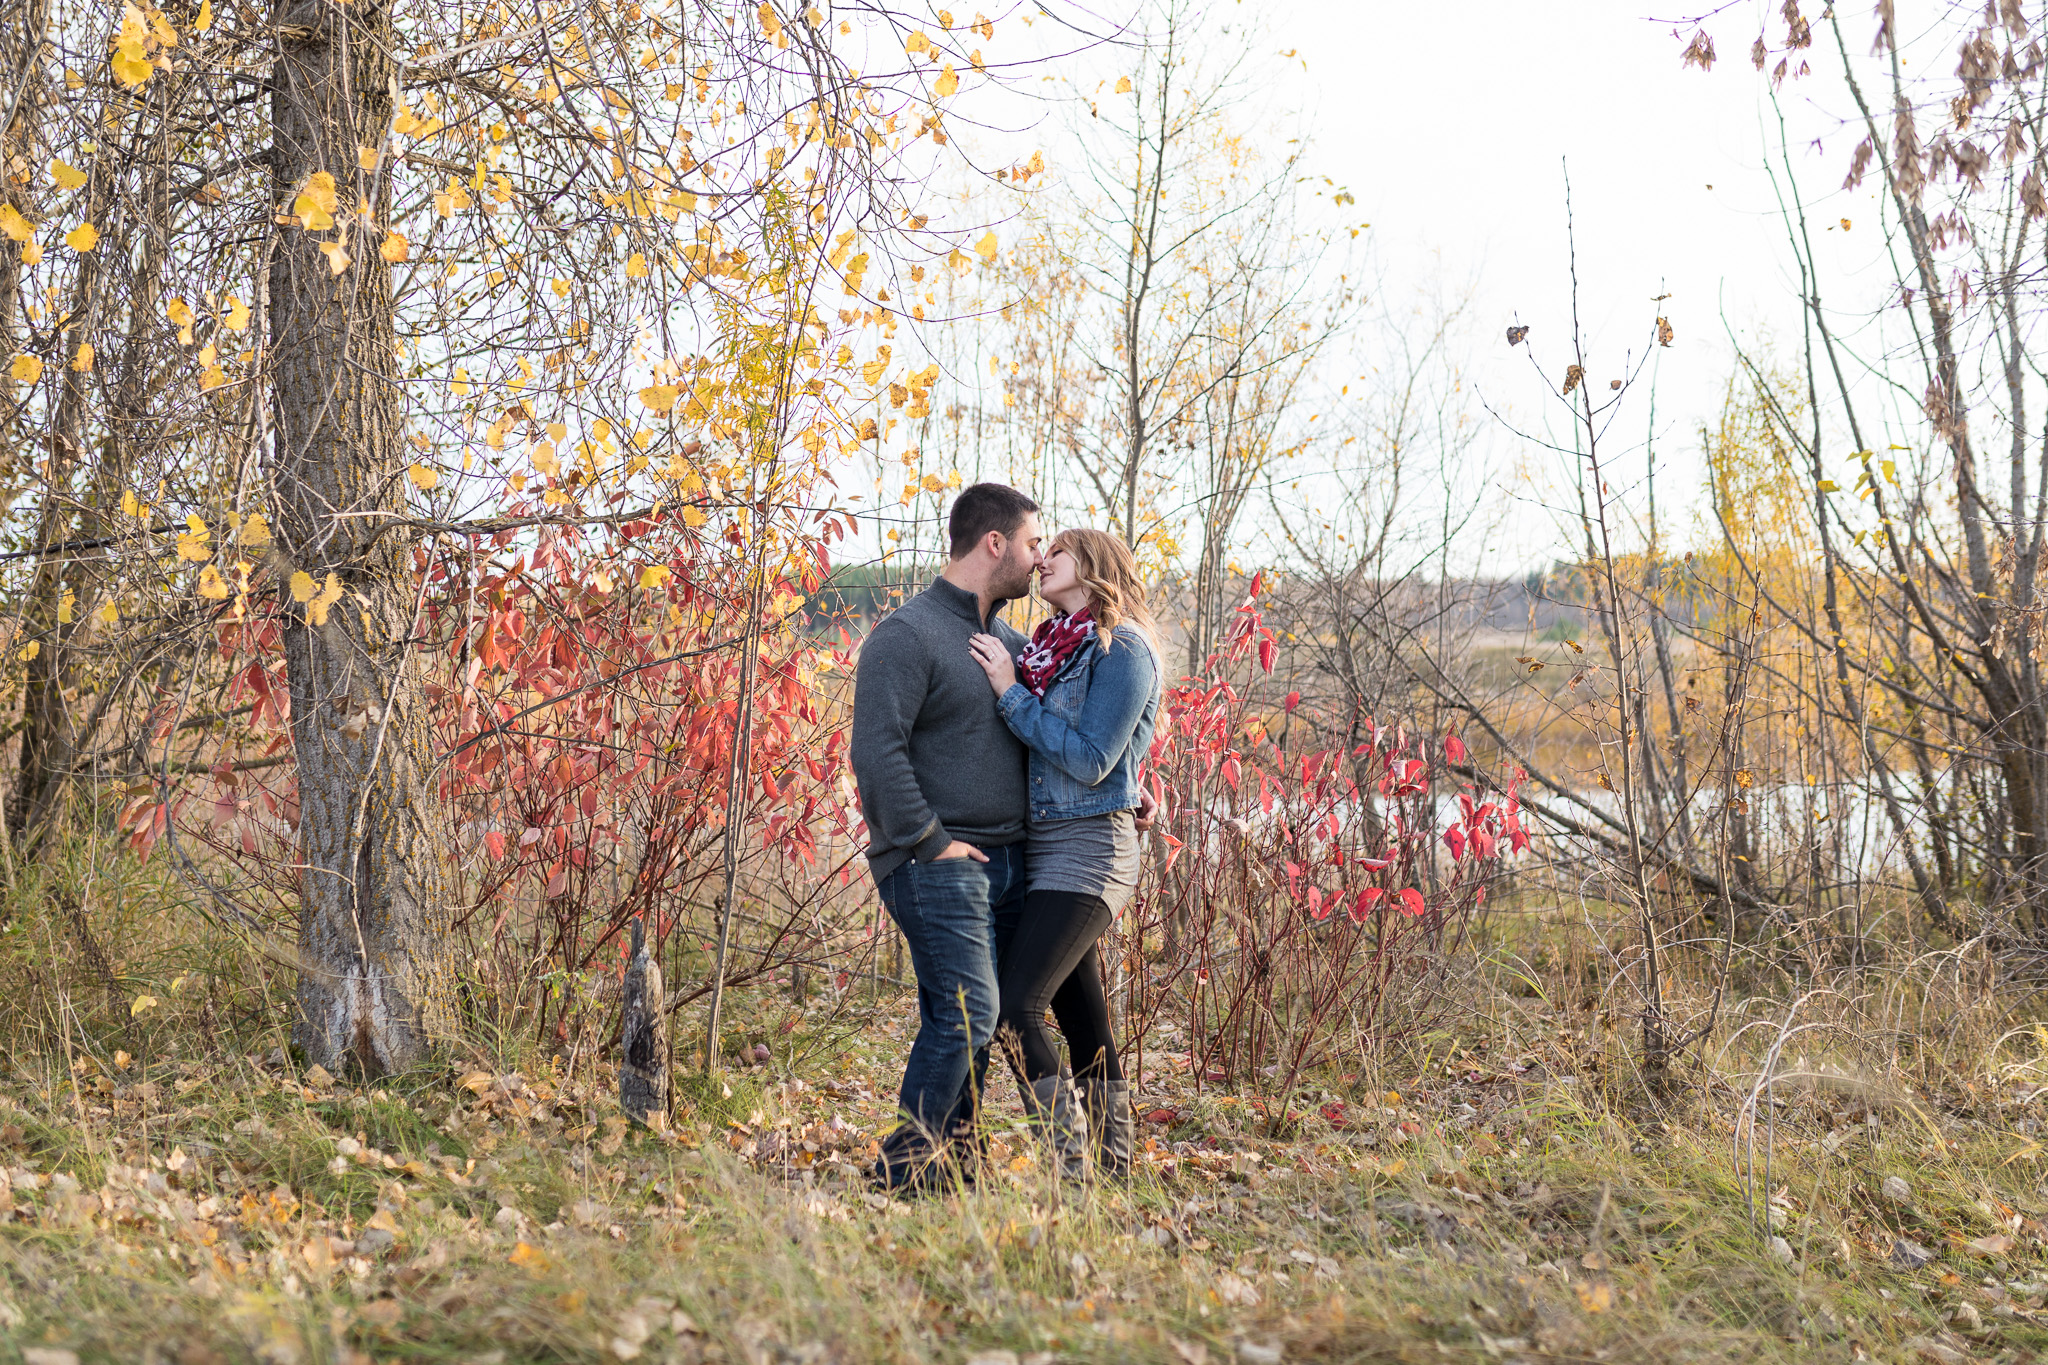 winnipeg-engagement-birdshill-park-12.jpg